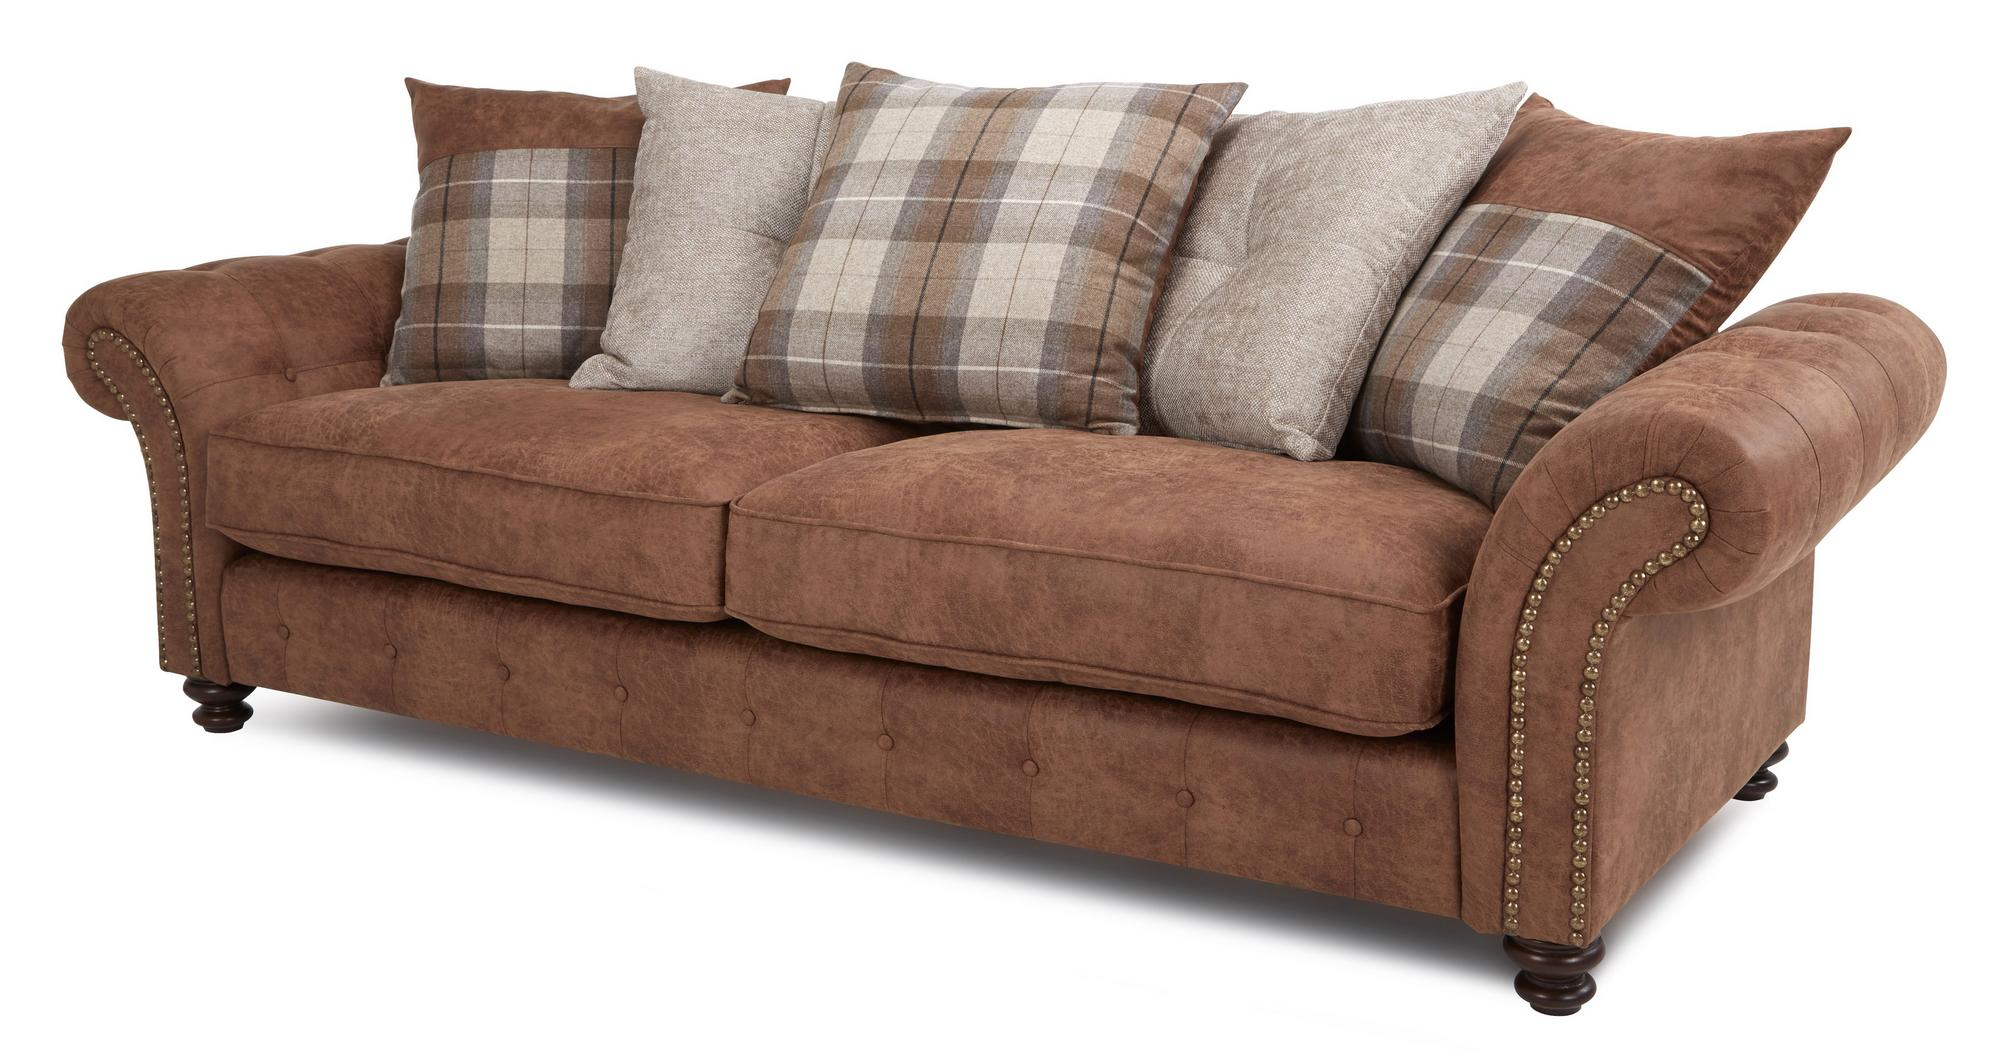 Dfs Oakland Brown Fabric 4 Seater Pillow Back Sofa 2 Seater Chair Set Ebay